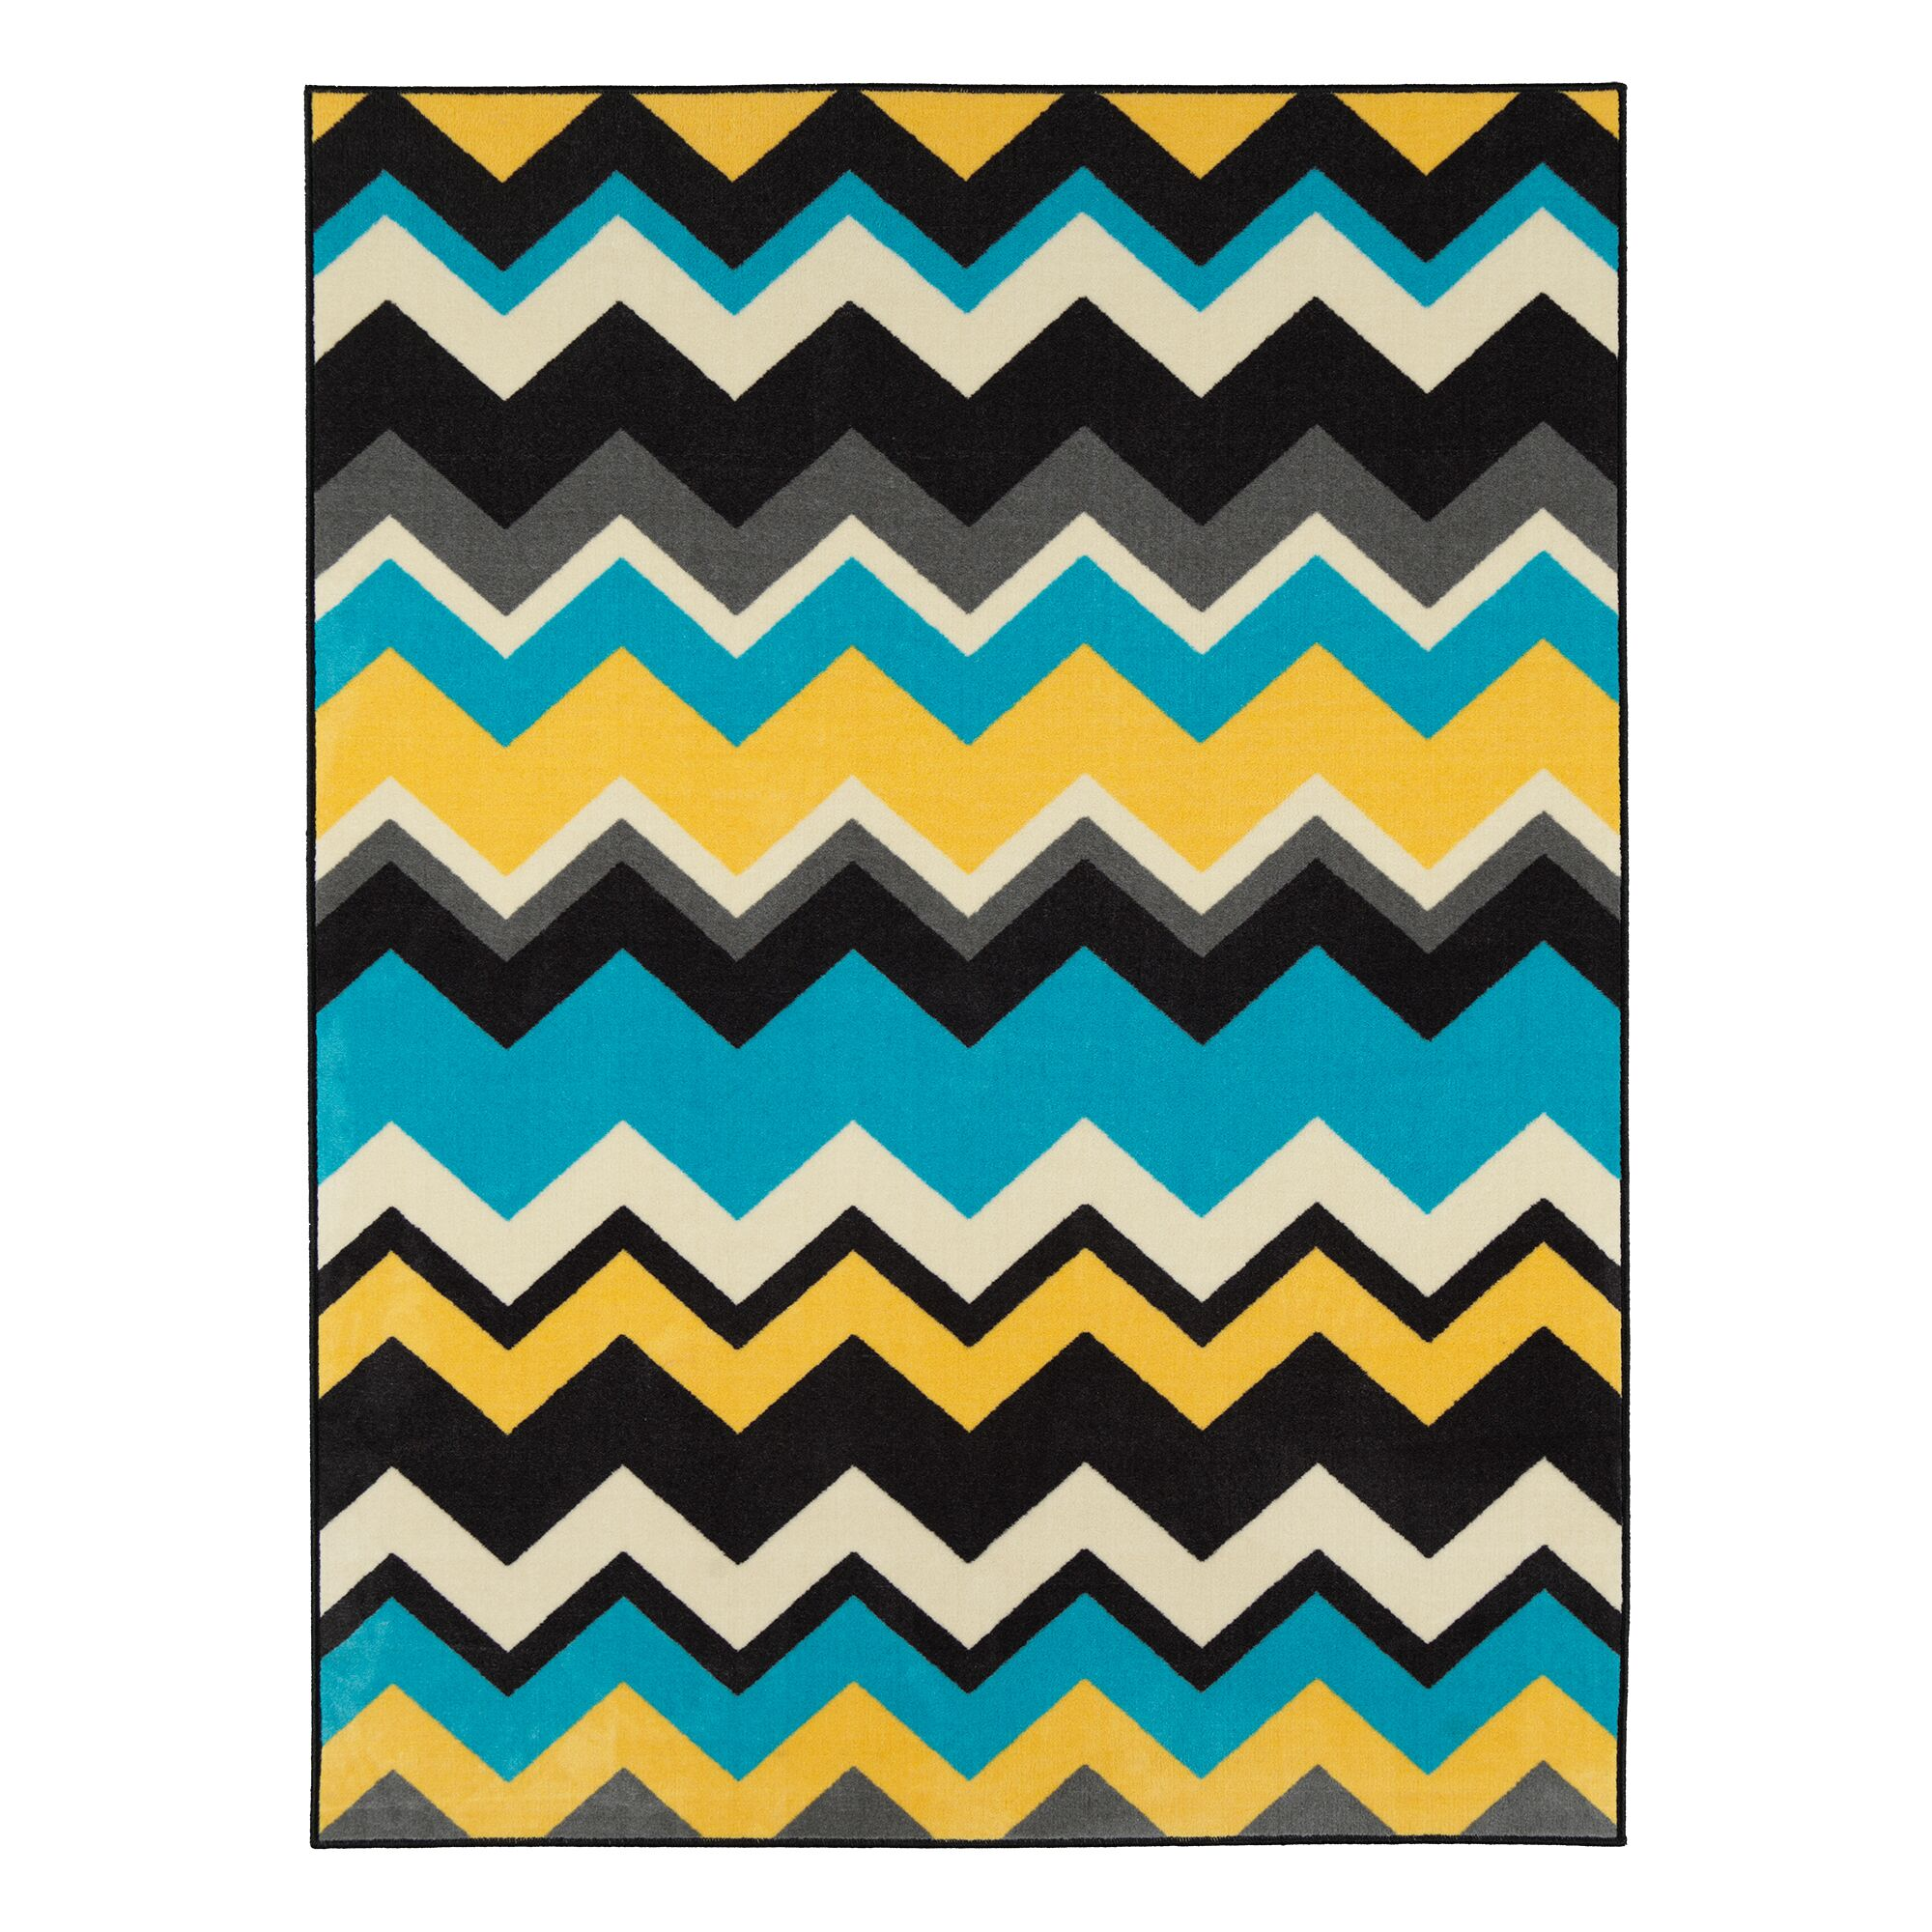 Barry Chevron Waves Blue/Yellow Area Rug Rug Size: 3'3